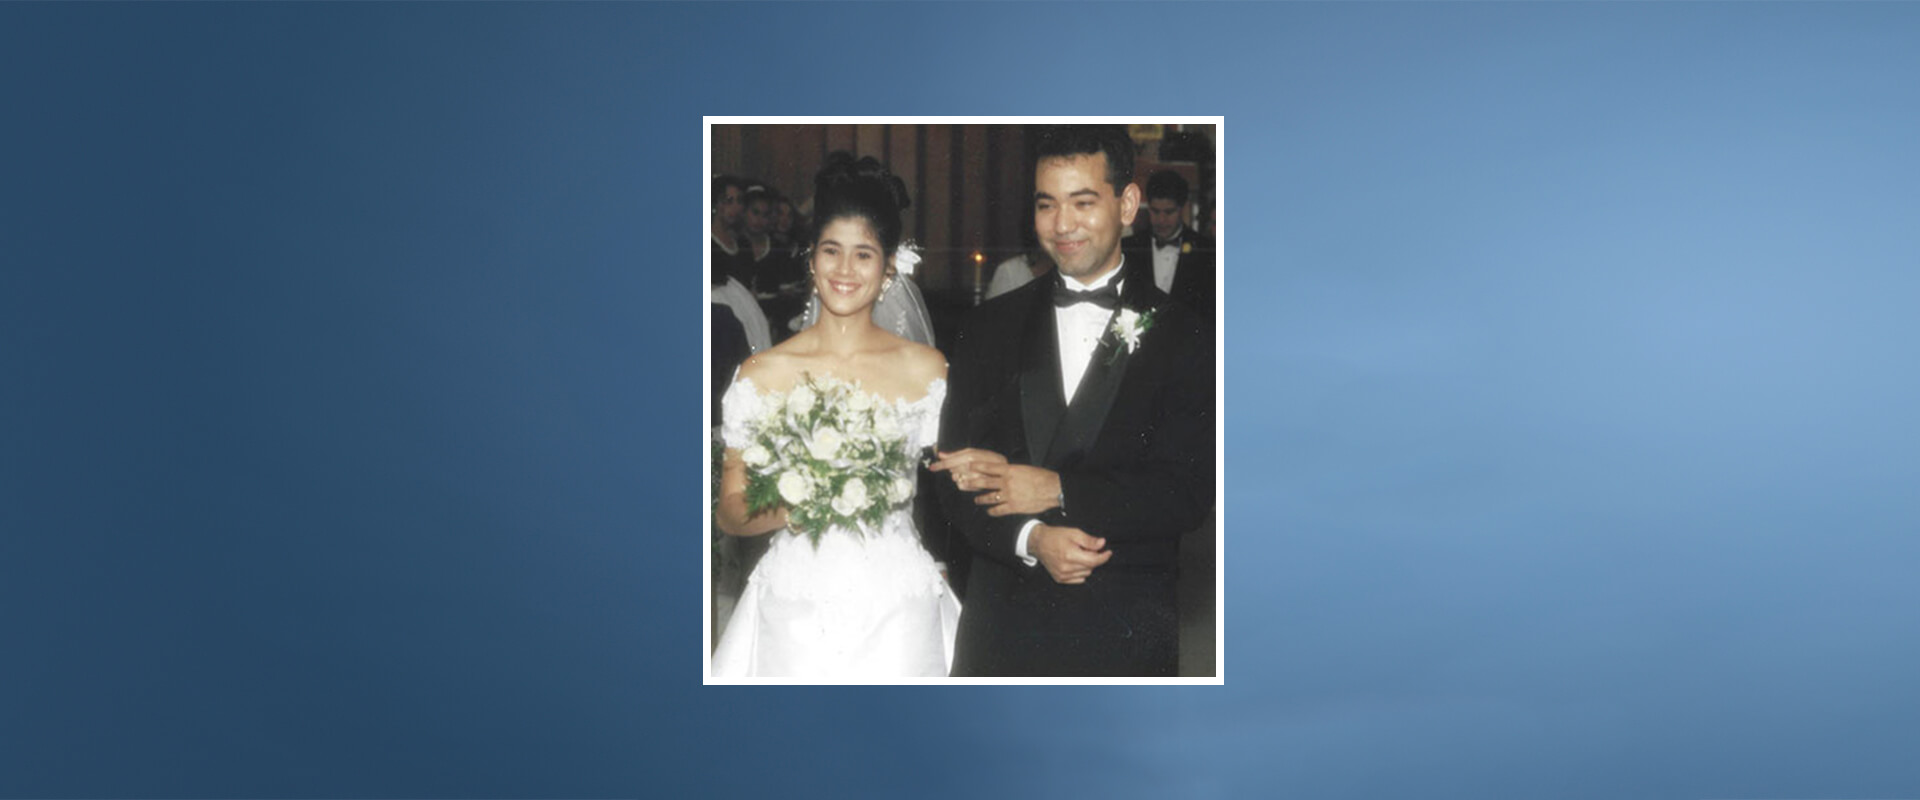 Enrique and Sonya Alemán on their wedding day in Assumption Chapel in 1995